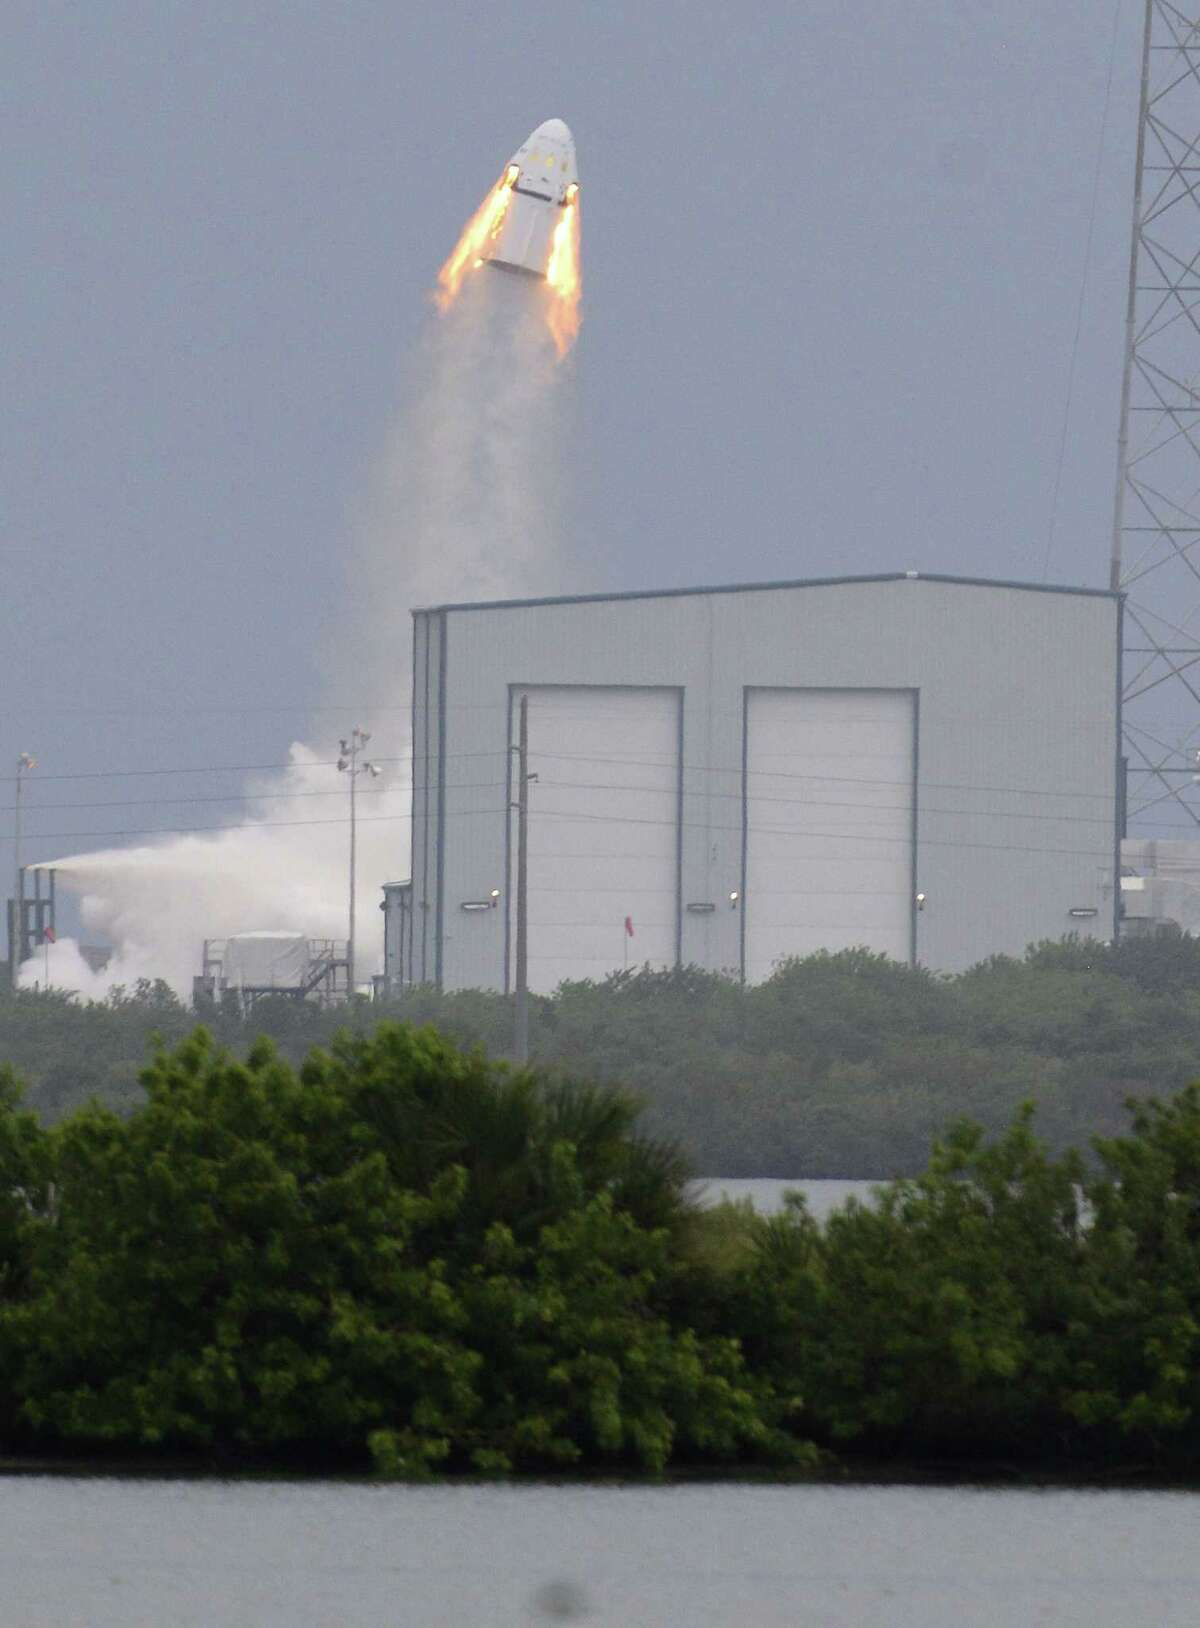 A SpaceX Dragon mock-up capsule blasts into the air, Wednesday, May 6, 2015 during a test flight in Cape Canaveral, Fla. The unmanned flight was testing a new, super-streamlined launch escape system for astronauts. The California-based company led by billionaire Elon Musk aims to launch U.S. astronauts to the International Space Station as early as 2017. (Craig Bailey/Florida Today via AP) NO SALES, MAGS OUT